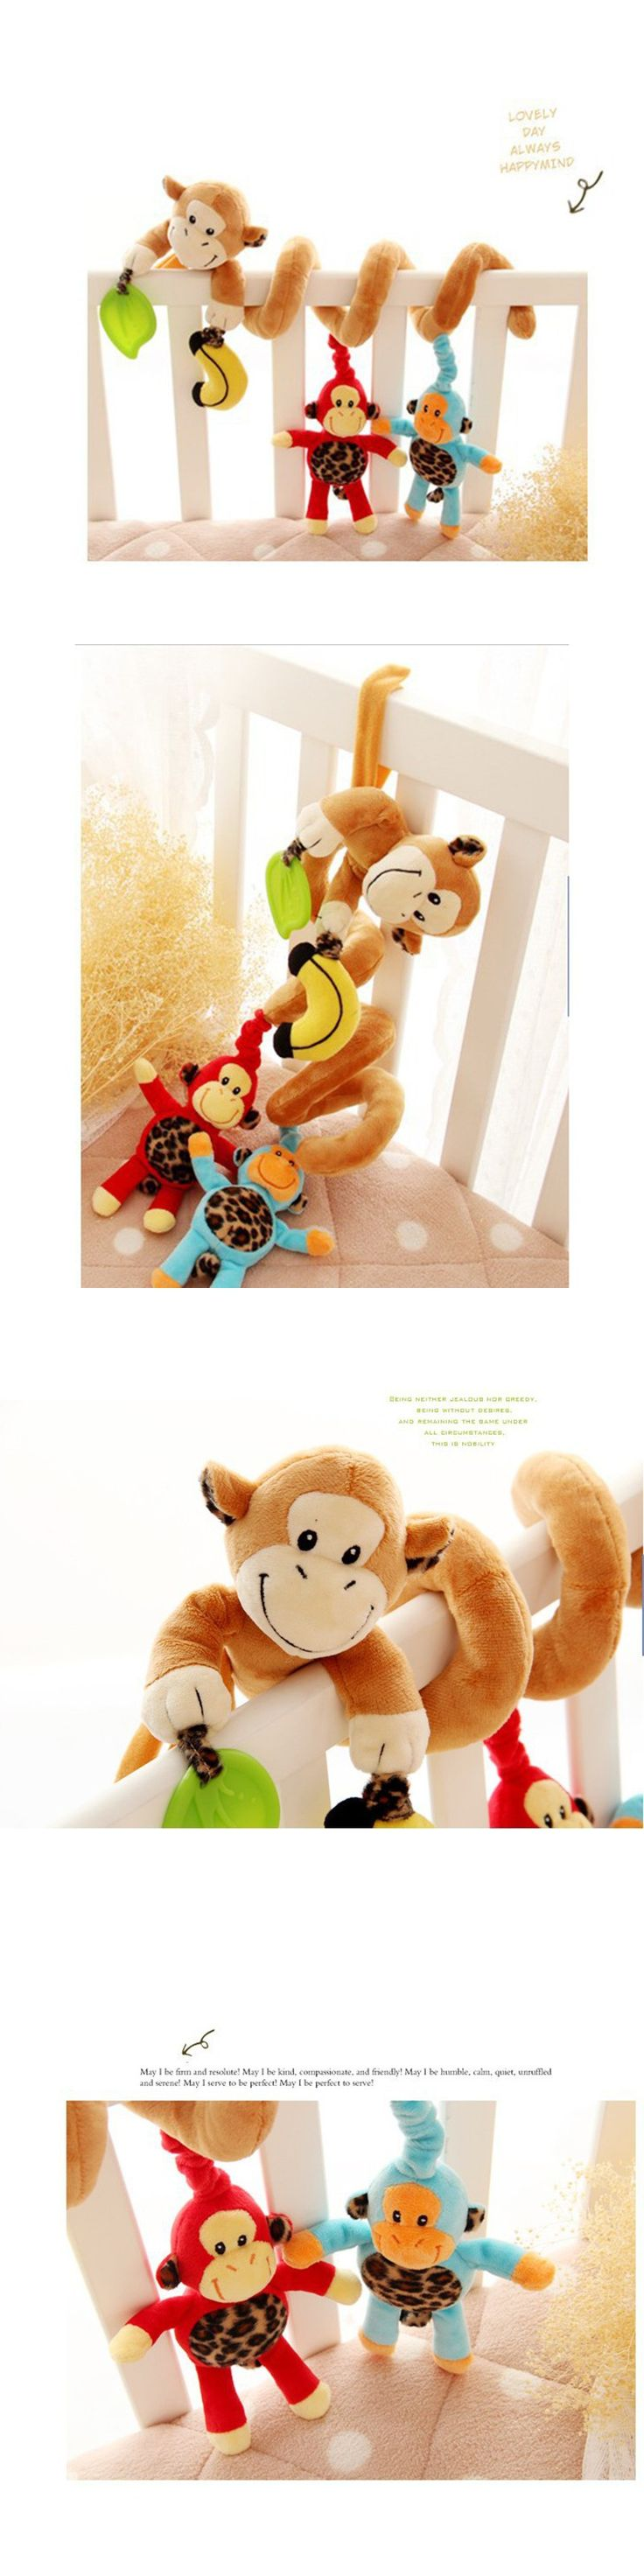 Baby toy musical monkey bed around the vibrating around the bed bell hanging musical plush beds bell ring the bell